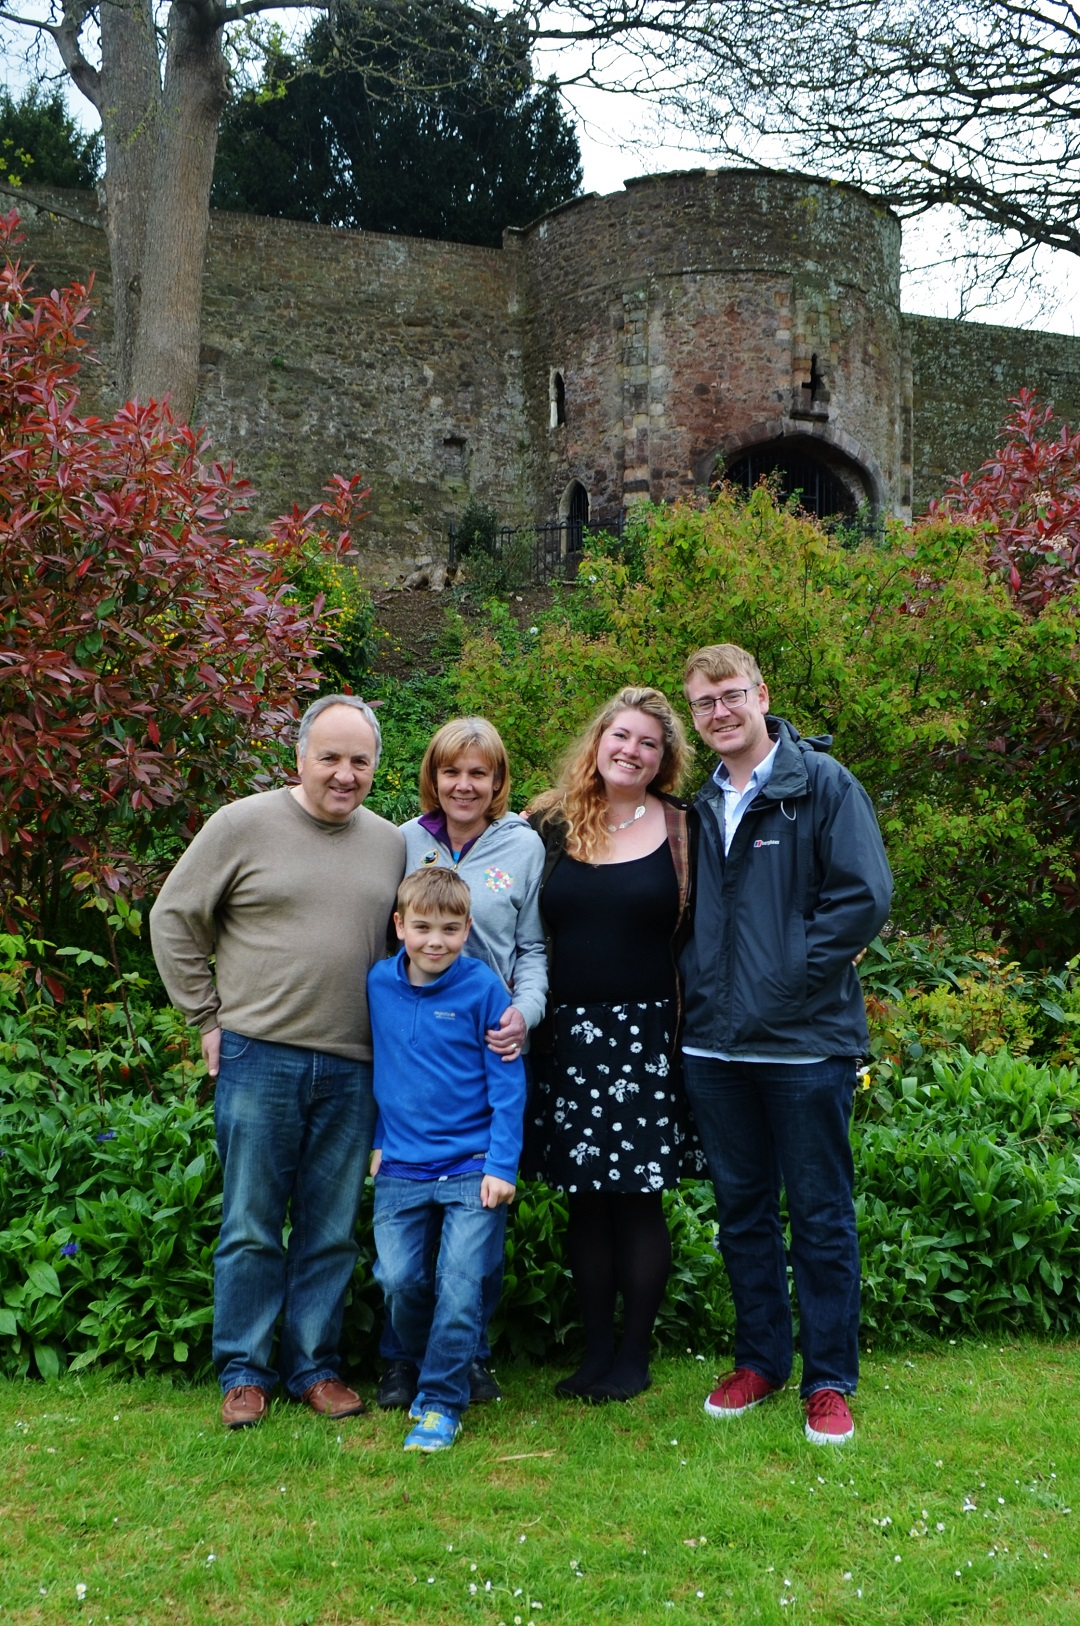 exeter-festival-of-south-west-food-and-drink-adams-family